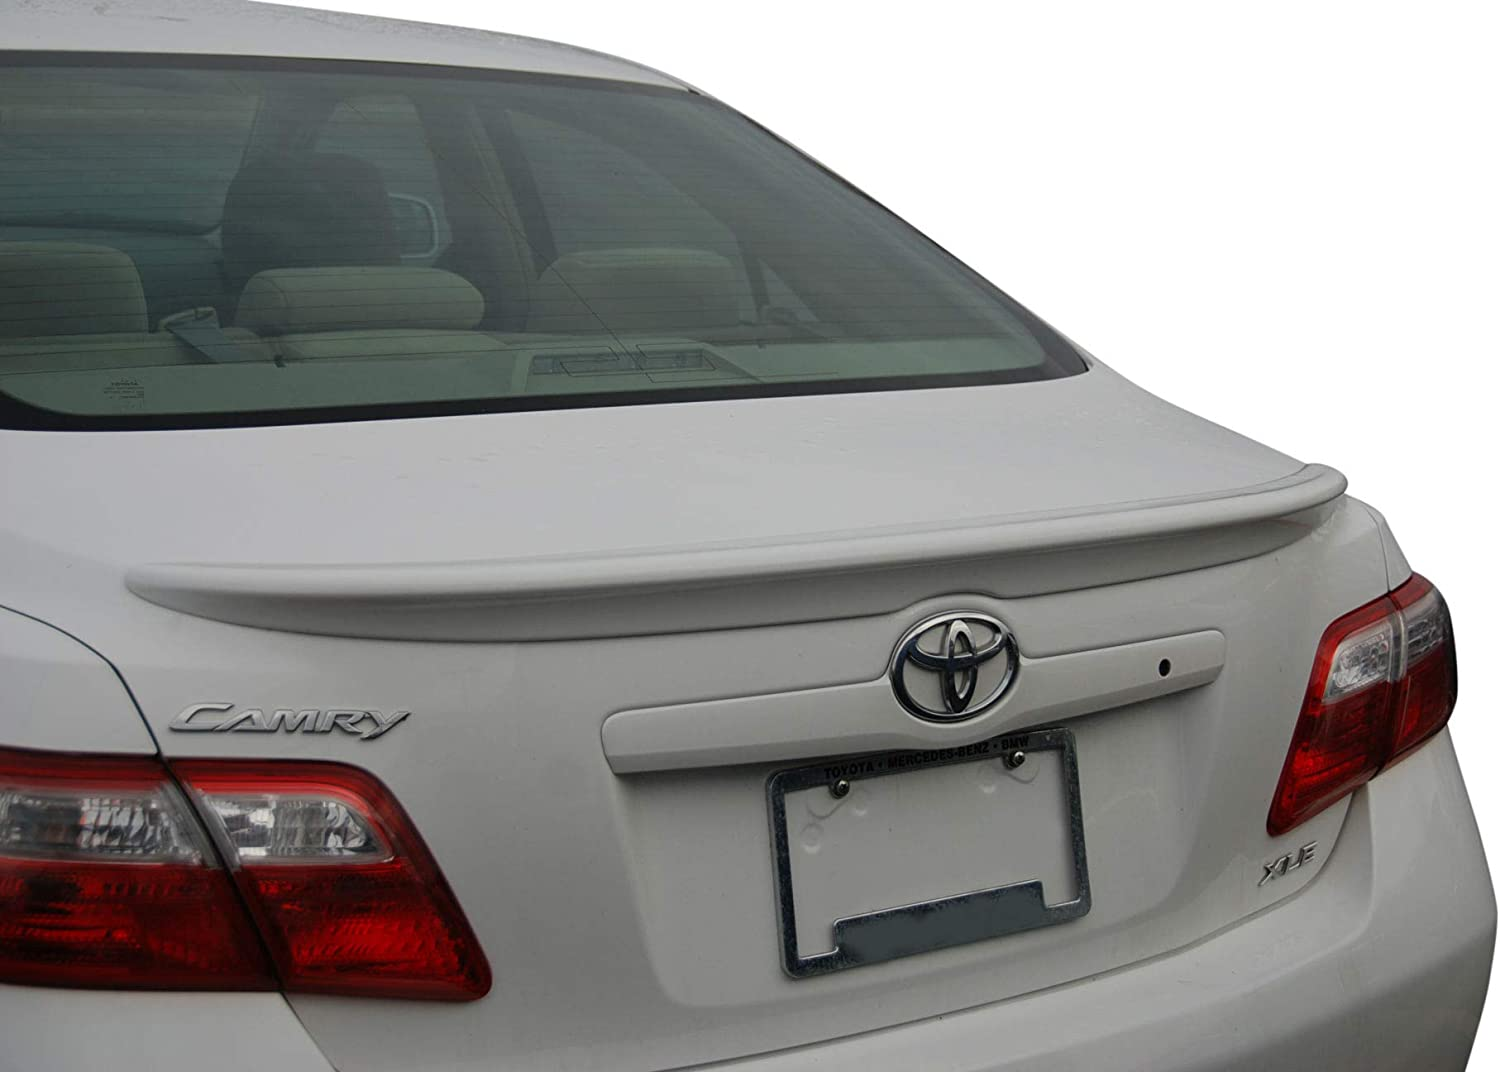 Factory Style Spoiler made for the Toyota Camry Painted in the Factory Paint Code of Your Choice 513 218 with 3M tape included